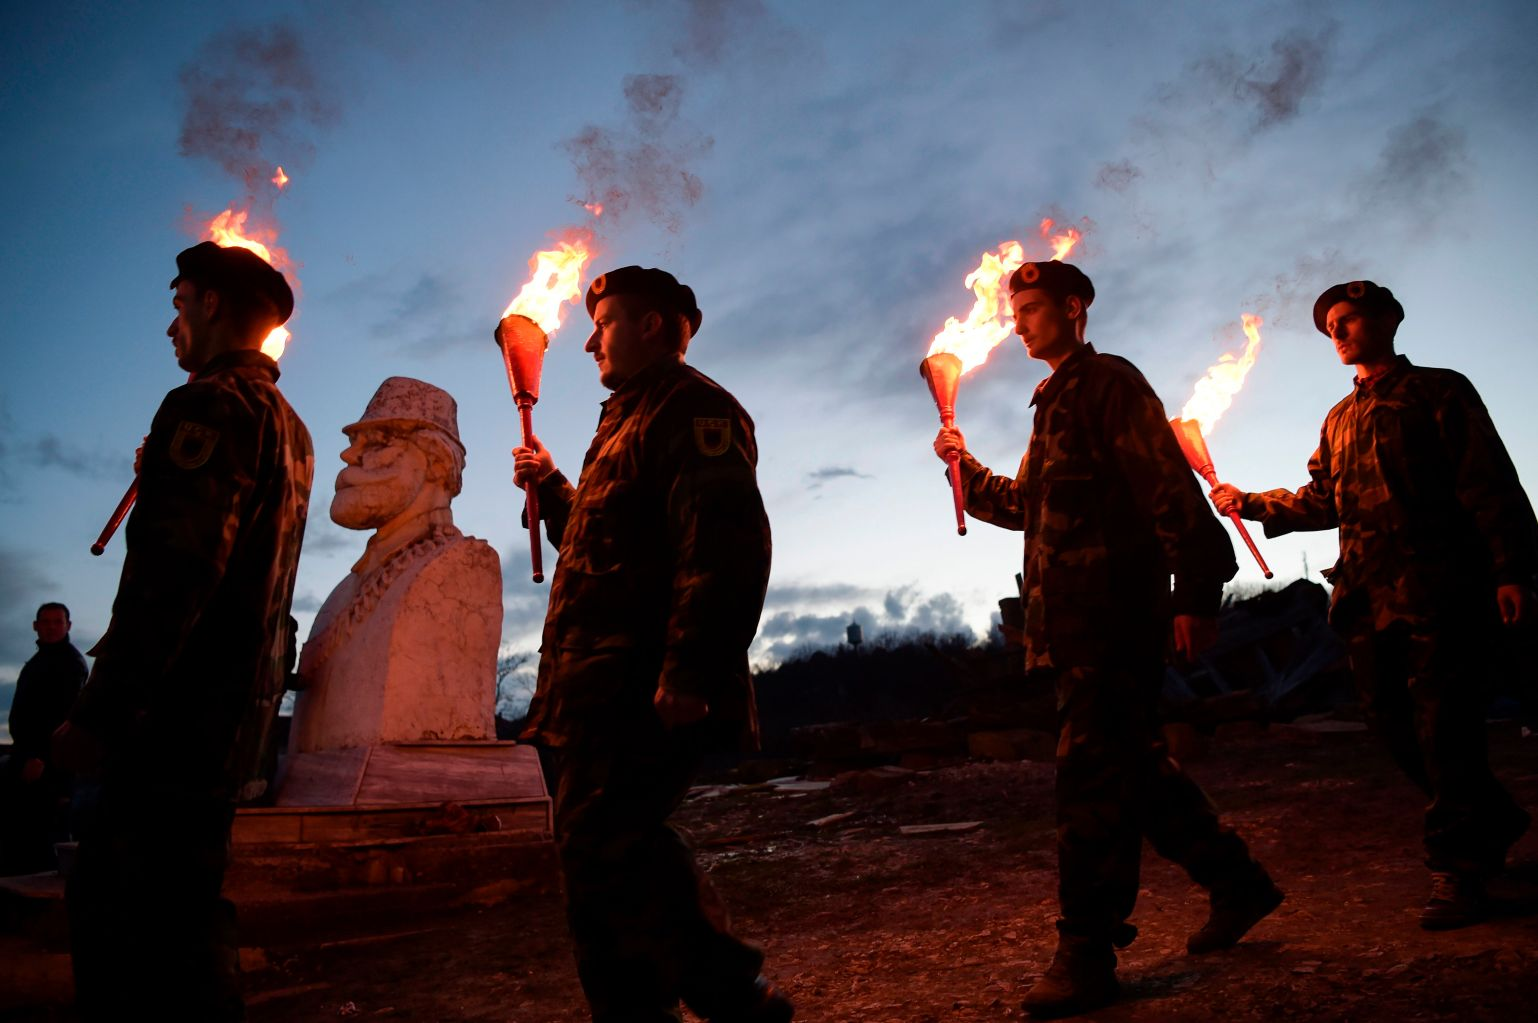 TOPSHOT - Kosovo Albanians dressed in military costumes carry torches during a bonfire ceremony marking the 20th anniversary of the killing of Kosovo Liberation Army (KLA) founding member and commander Adem Jashari, whose sculpture is seen rear left, on March 7, 2018 in Prekaz.  Jashari was among dozens of members of his family that were killed by Serb security forces in the village of Prekaz. / AFP PHOTO / Armend NIMANI        (Photo credit should read ARMEND NIMANI/AFP/Getty Images)